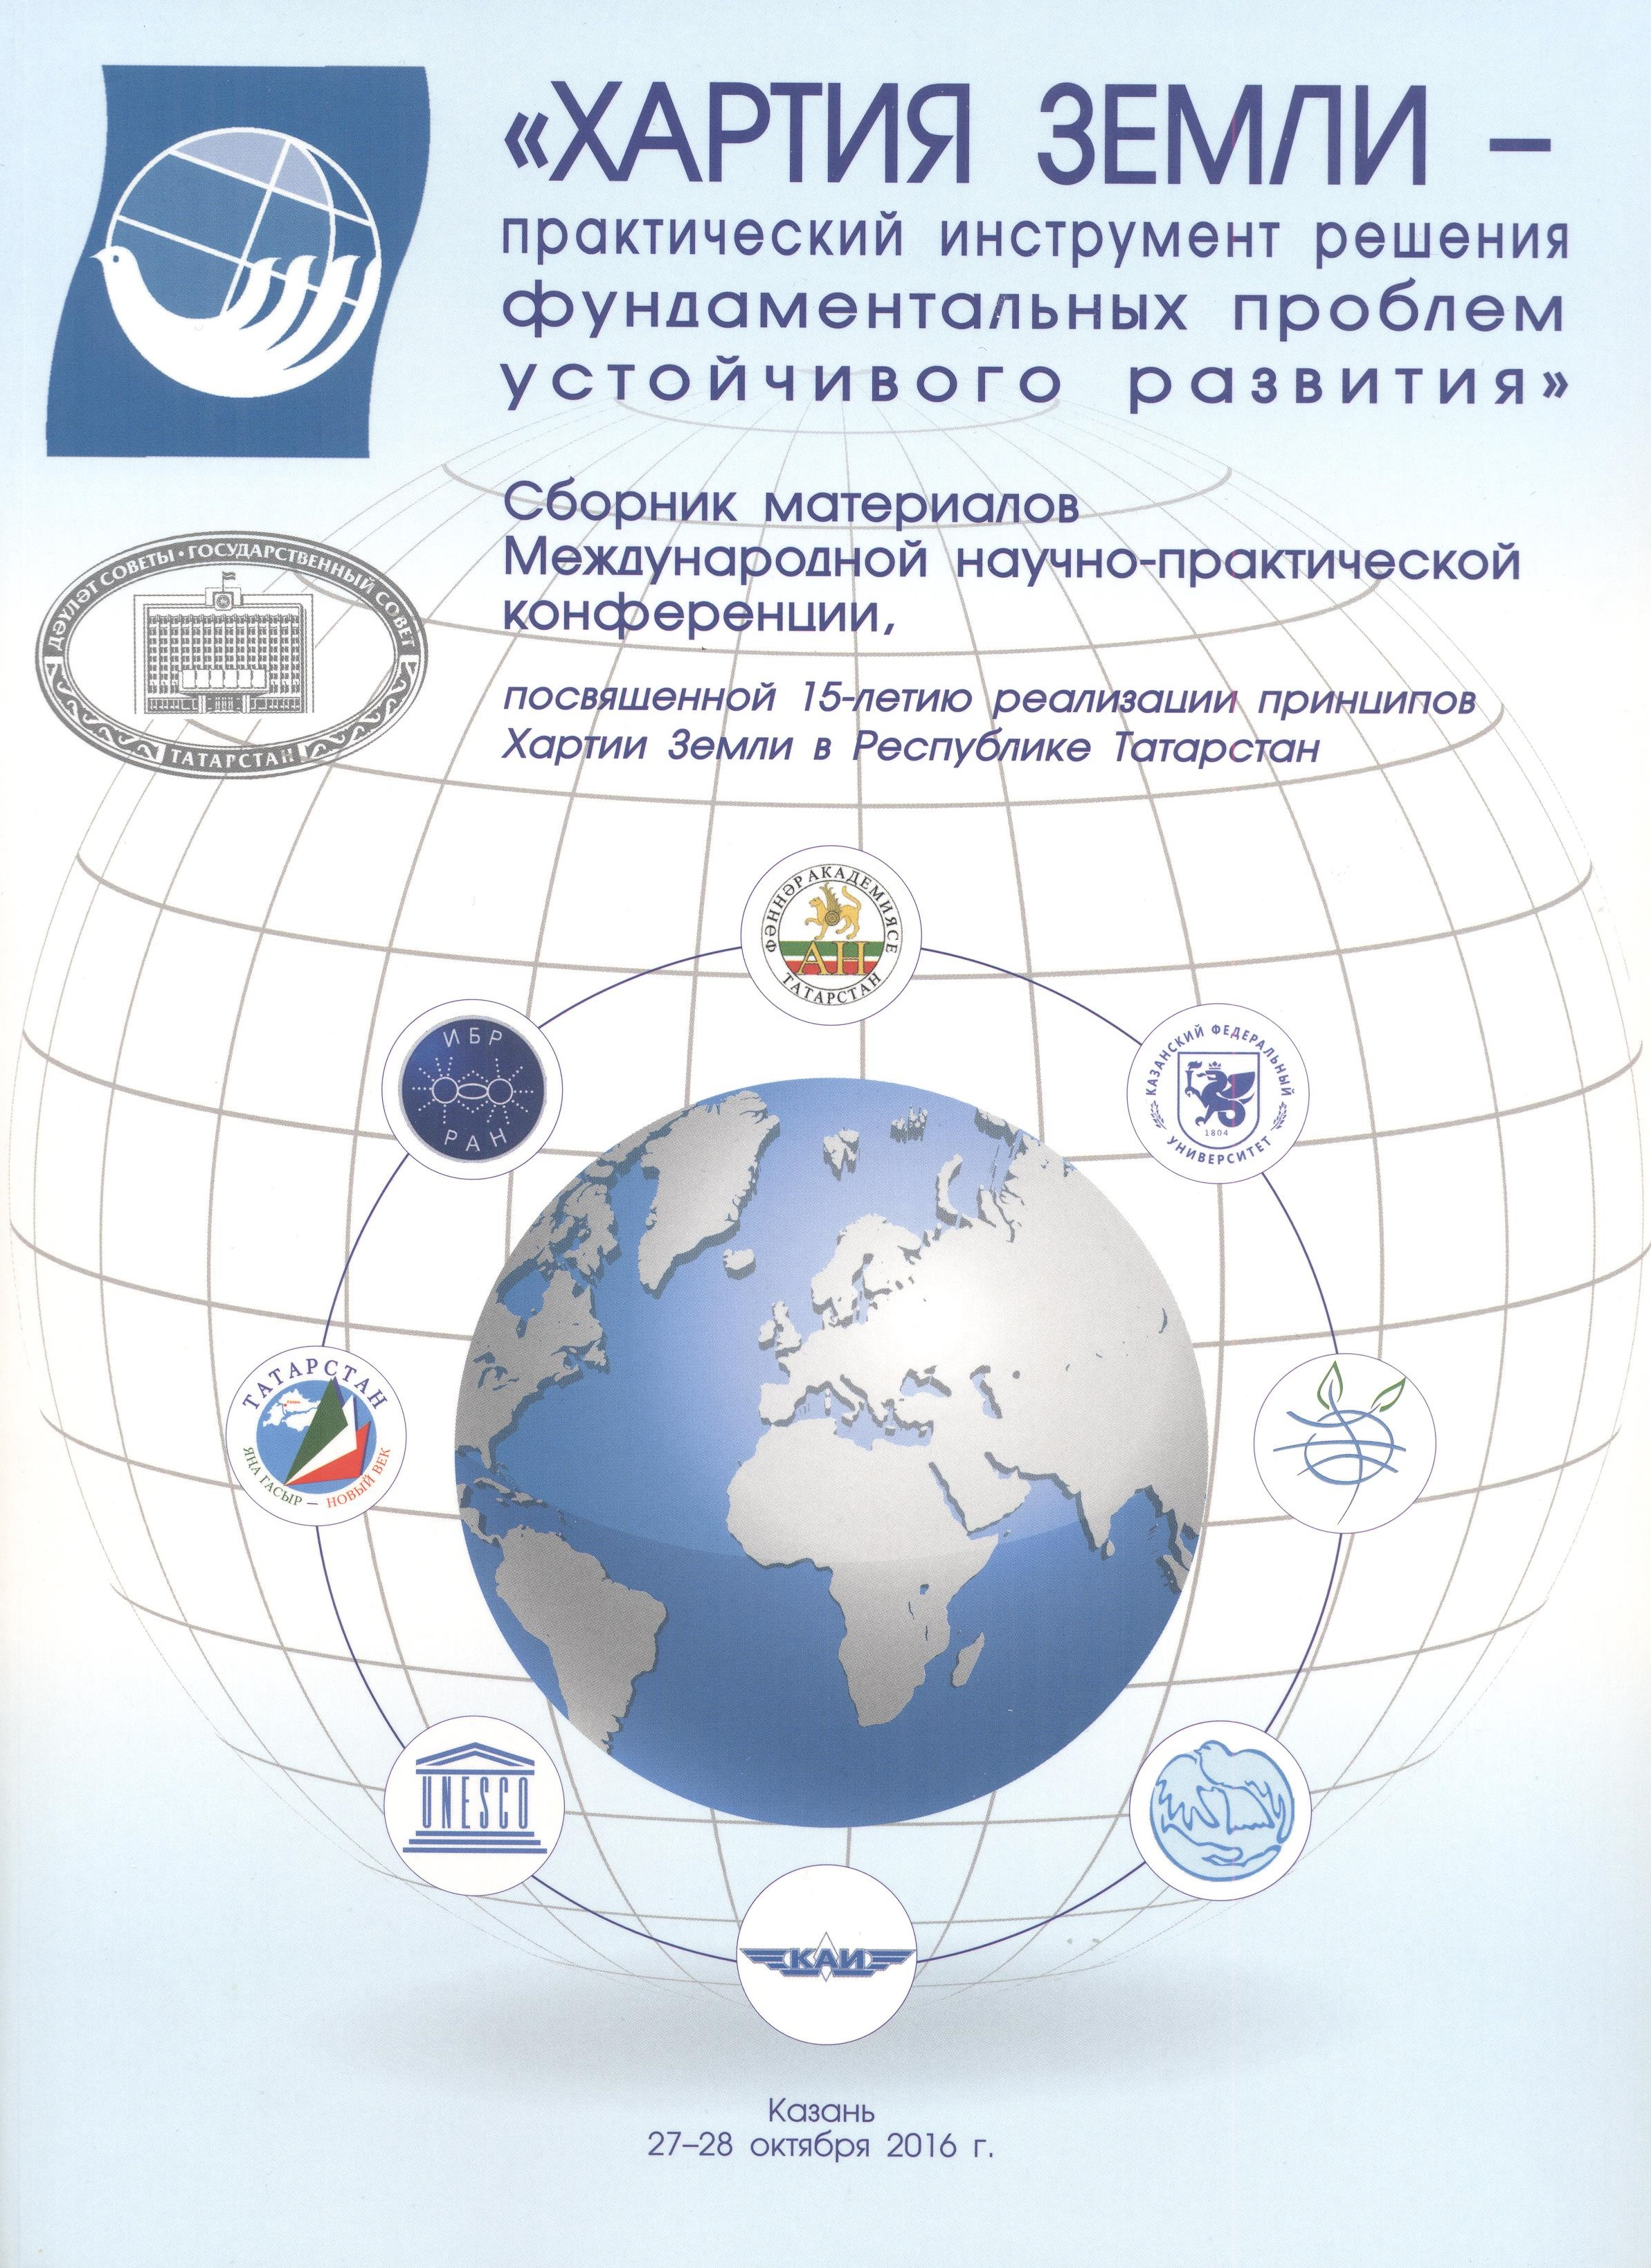 Georgy Fomenko, Marina Fomenko. Globalization of Sustainable Development Goals and Information in Environmental Management and Environmental Protection